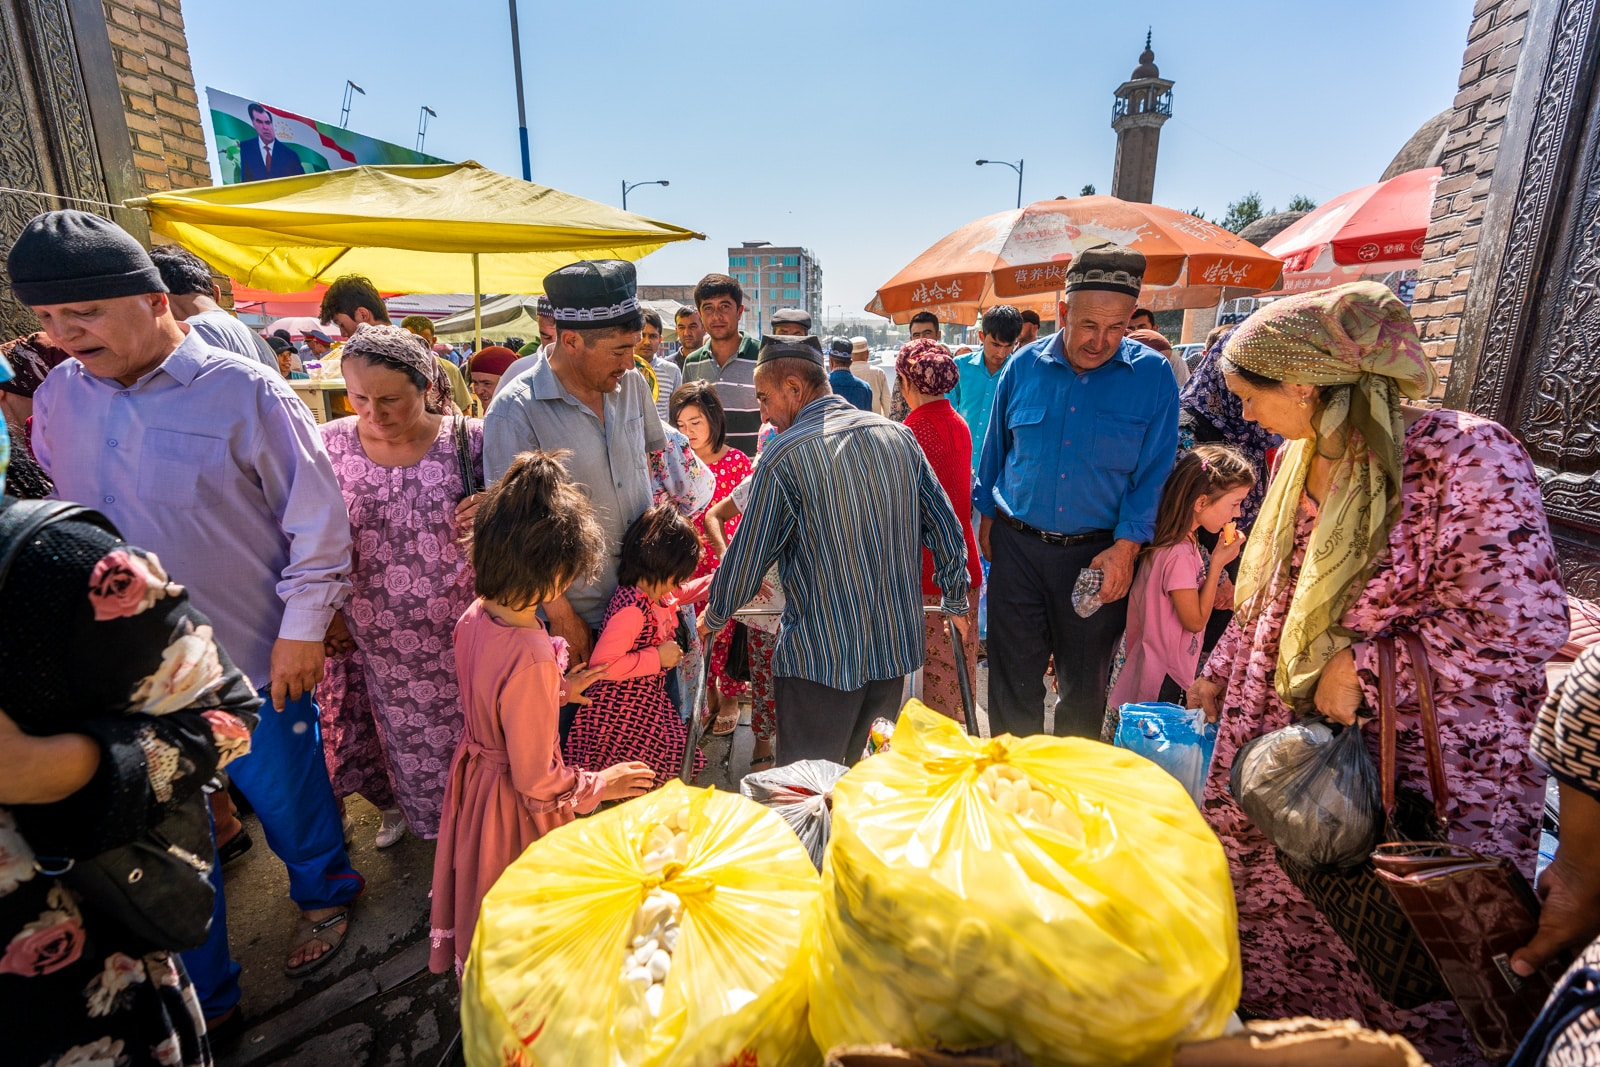 Man walking a cart through the Panjakent Bazaar in Western Tajikistan